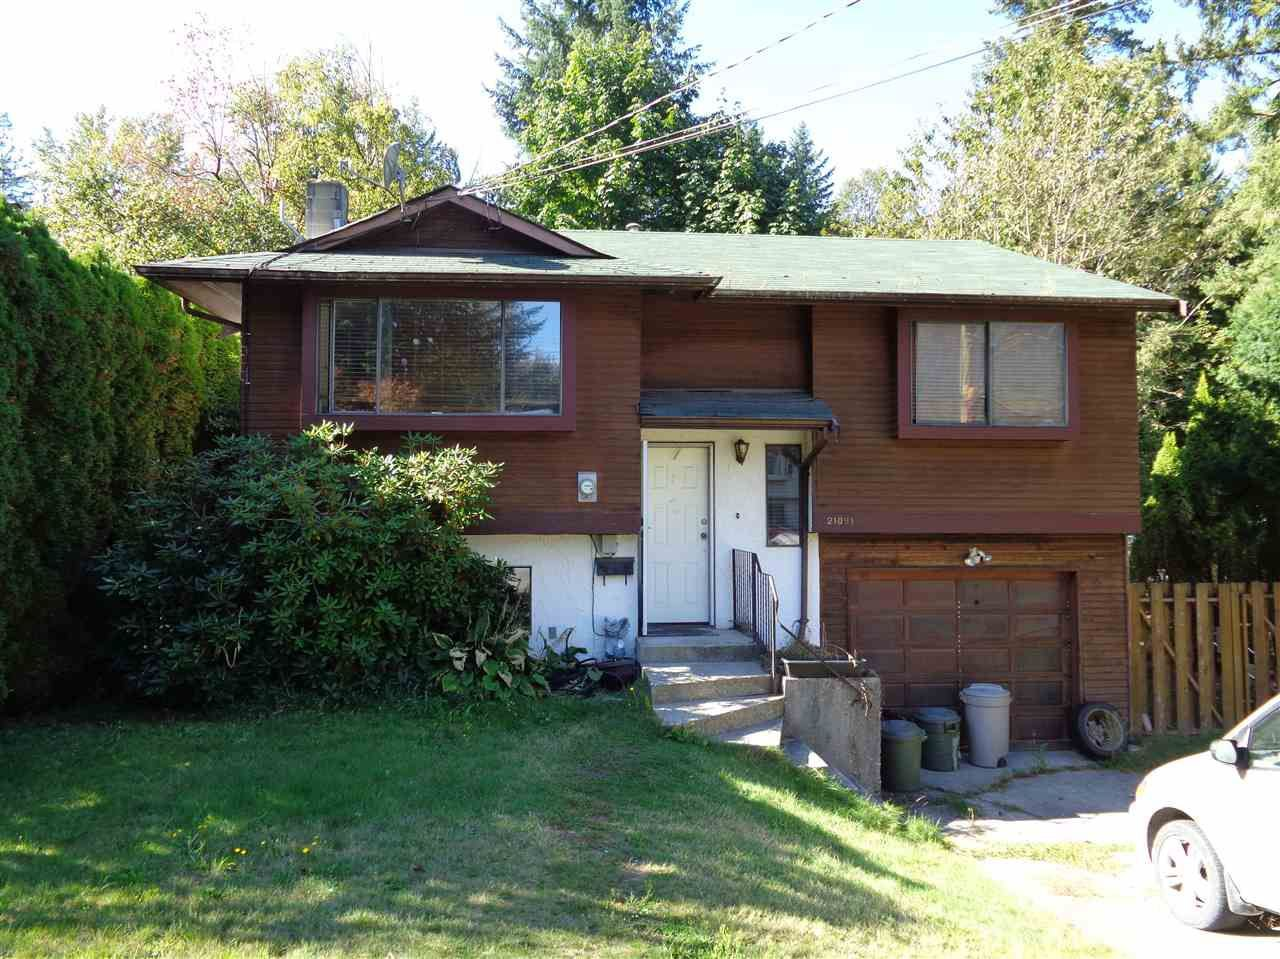 Main Photo: 21091 LAKEVIEW Crescent in Hope: Hope Kawkawa Lake House for sale : MLS®# R2211612